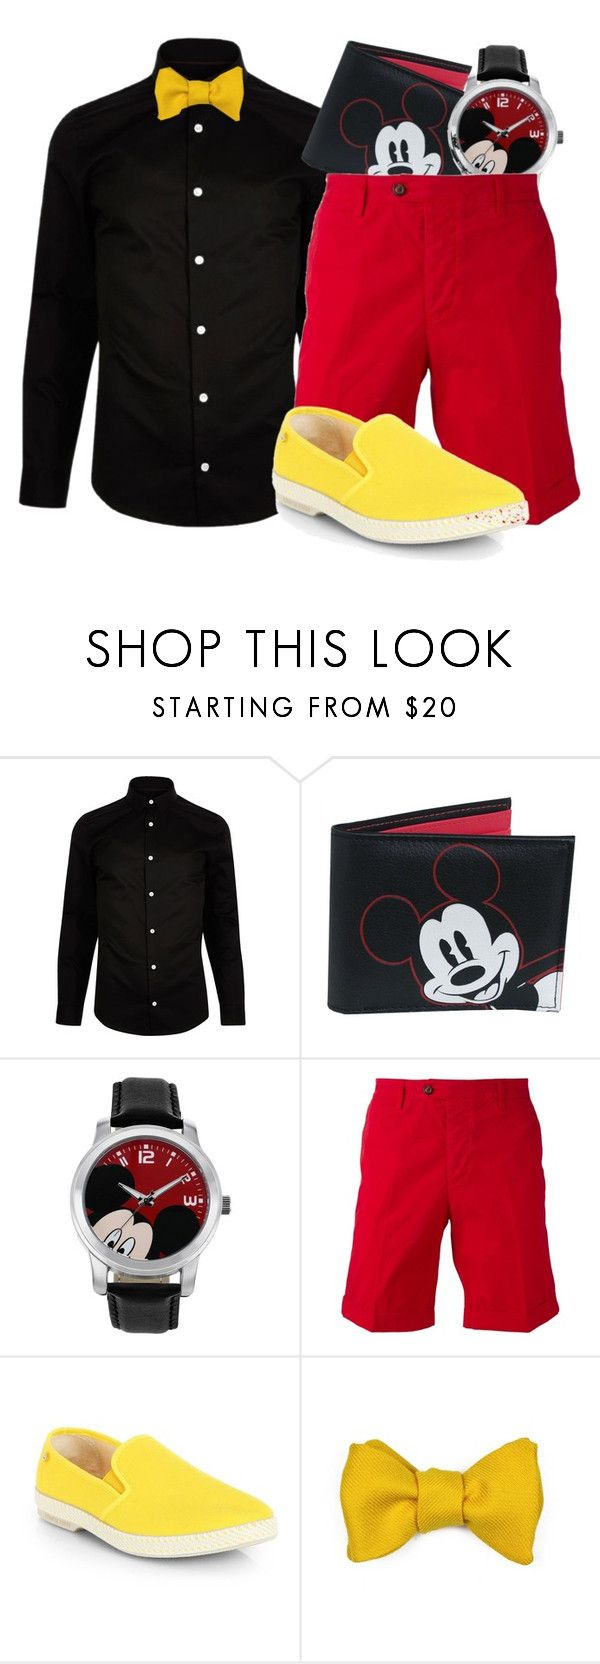 """Mickey Mouse"" by almostfamous86 ❤ liked on Polyvore featuring River Island, Disney, AMI, Rivieras, Robinson & Dapper, men's fashion, menswear, disney, disneybound and mickeymouse"